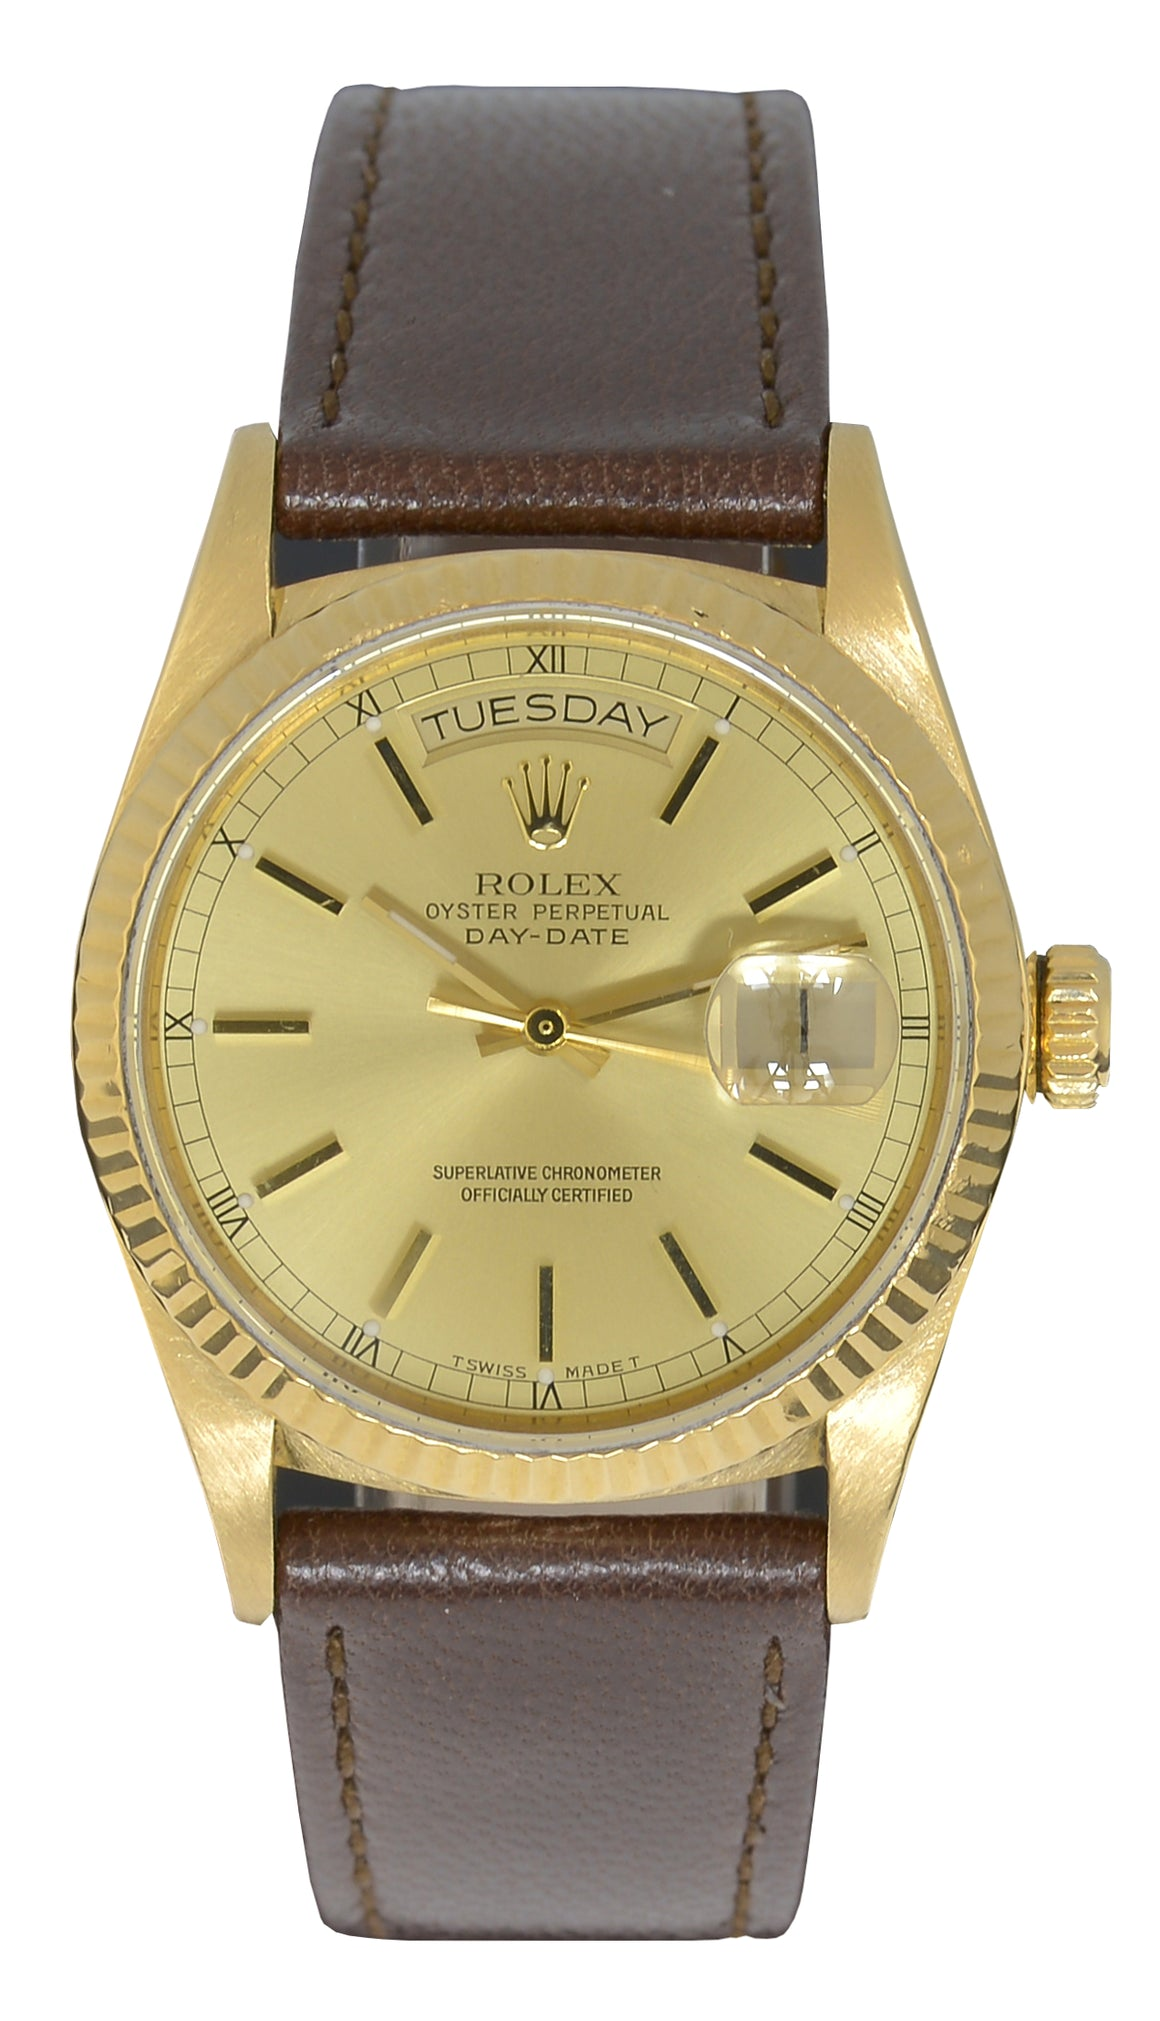 Rolex Day-Date 36, Champagne Dial, Ref: 18038 (Rolex strap & Buckle)